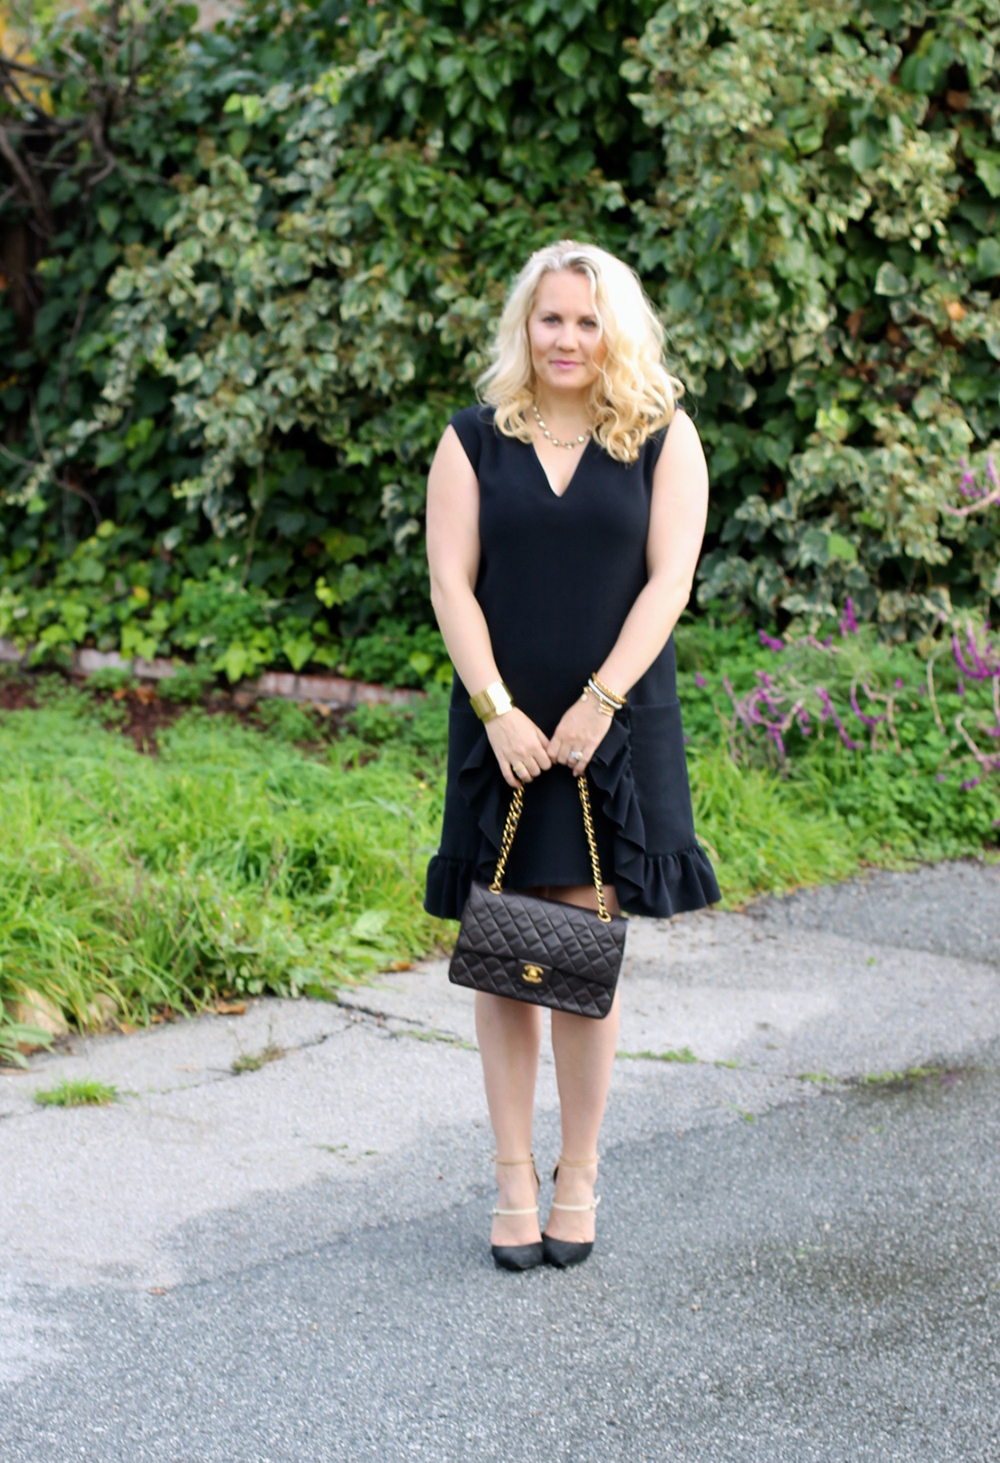 lbd-little-black-dress-ruffle-pockets-marni-rent-the-runway-outfit-inspiration-holiday-style-guide-have-need-want-8